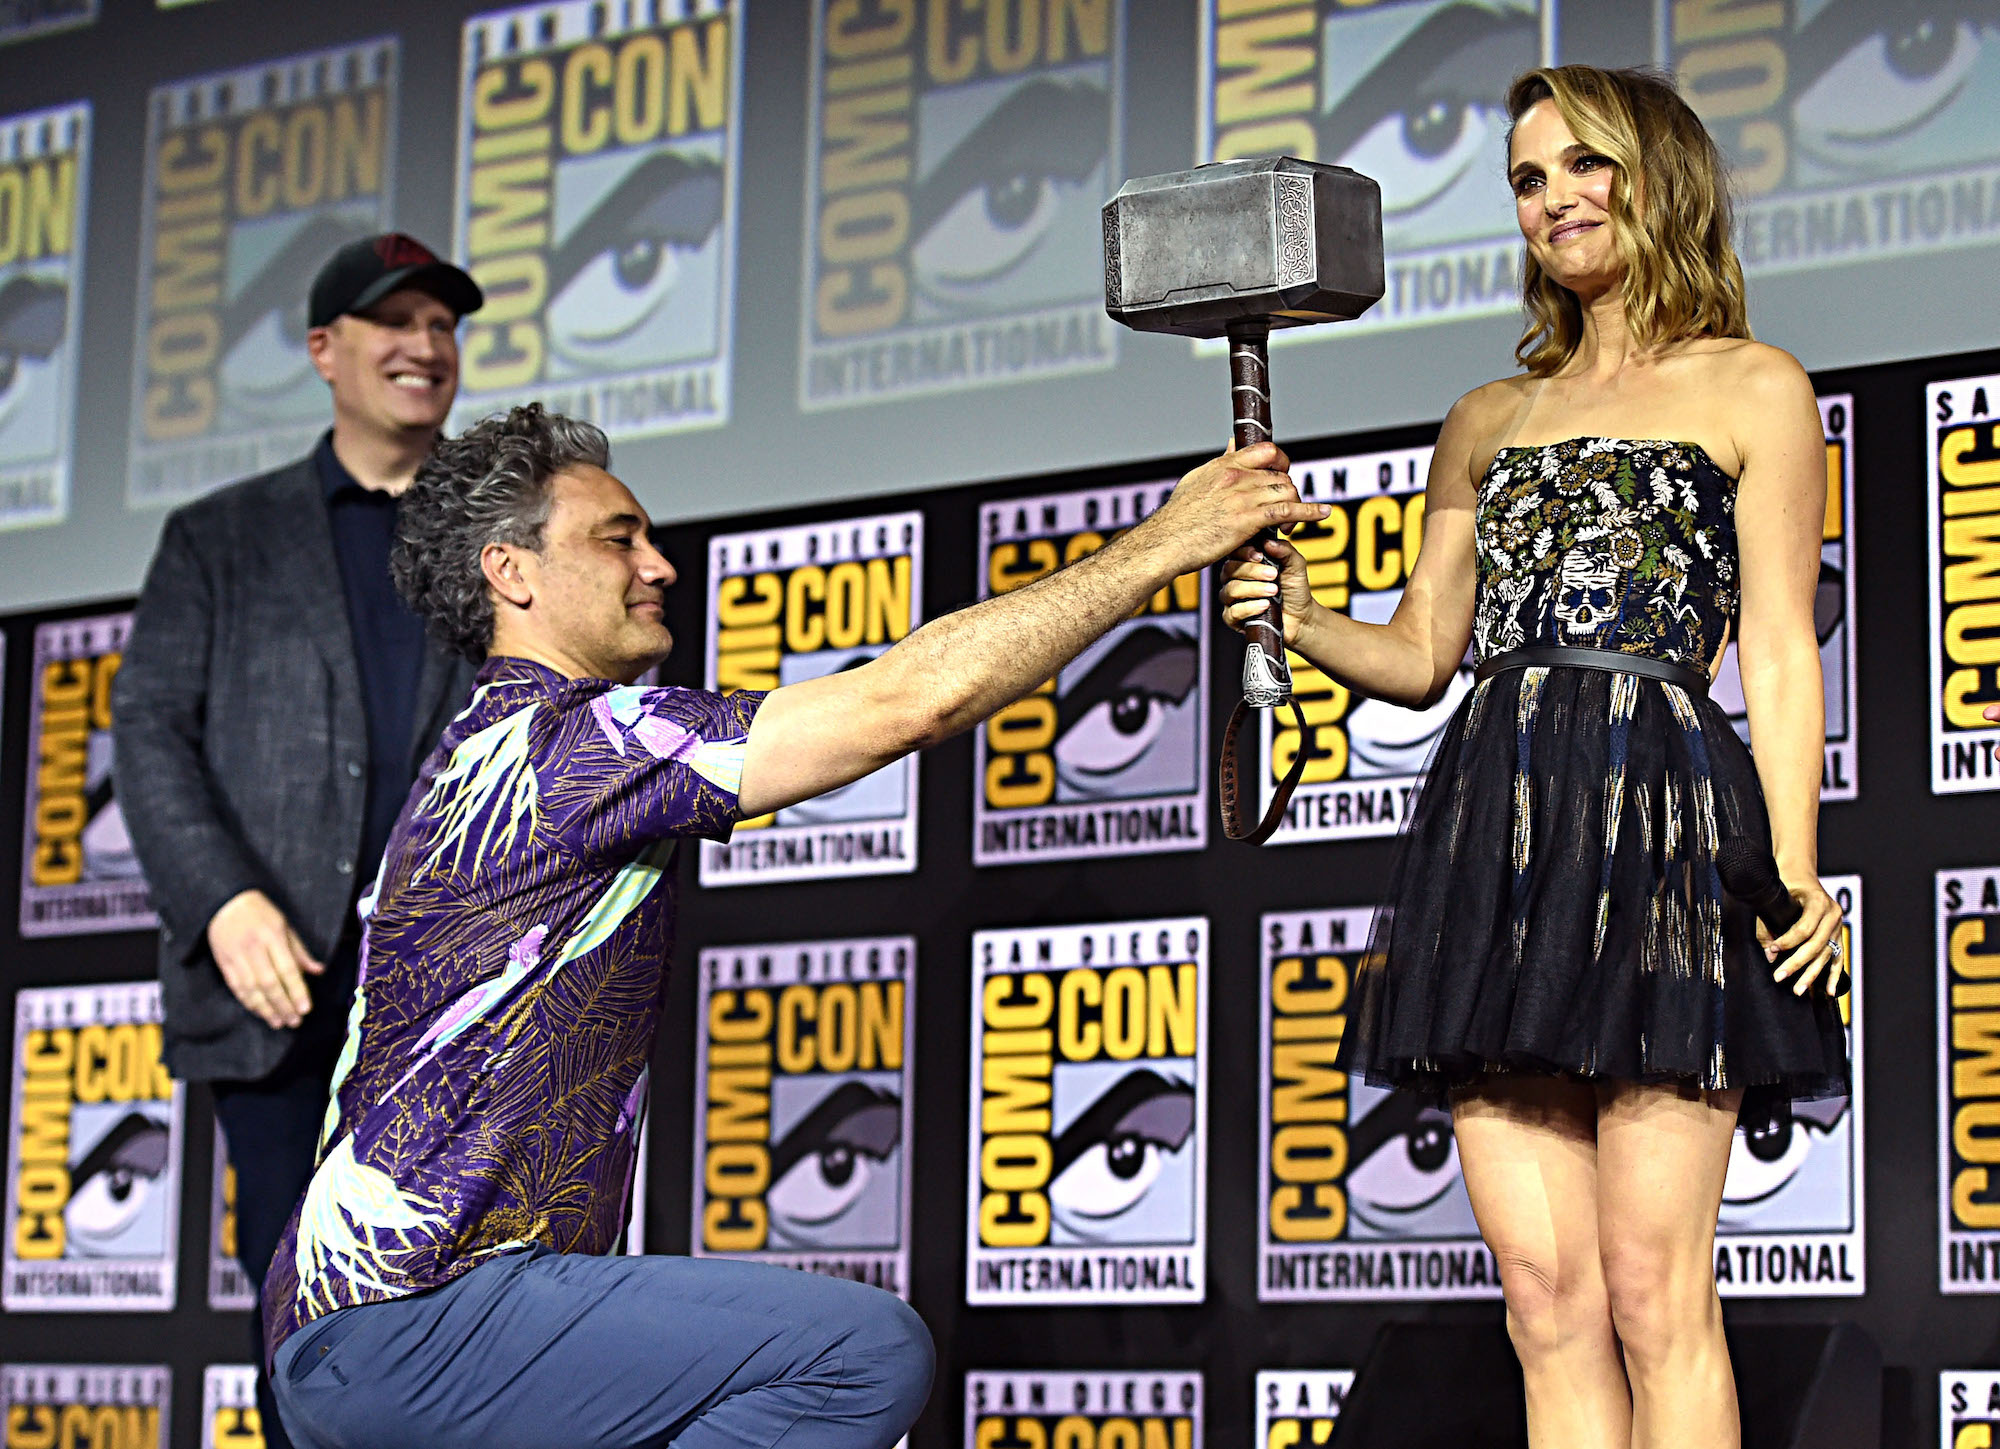 Kevin Feige, Taika Waititi, and Natalie Portman on stage at the 2019 San Diego Comic-Con, announcing news about 'Thor: Love and Thunder' on July 20, 2019.